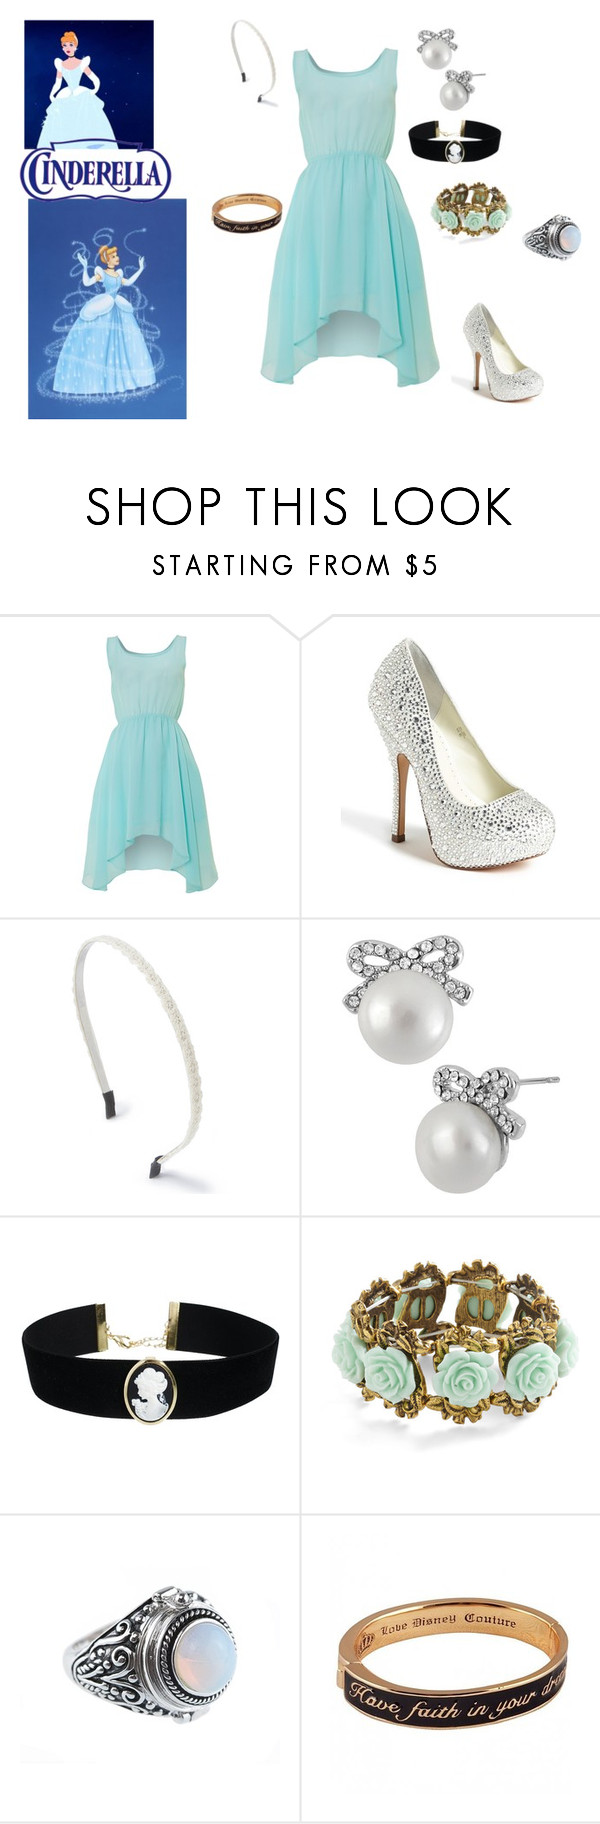 """""""Cinderella"""" by msgeeky ❤ liked on Polyvore featuring Glamorous, Benjamin Adams, Betsey Johnson, ASOS and Disney Couture"""